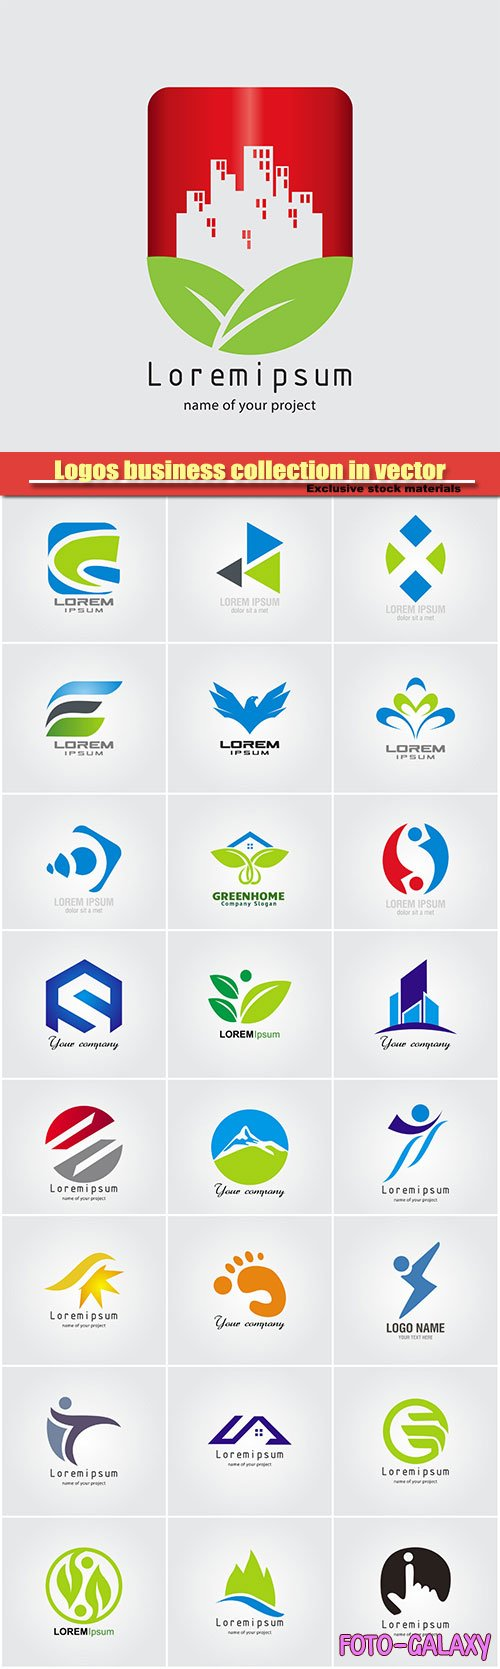 Logos business collection in vector #31